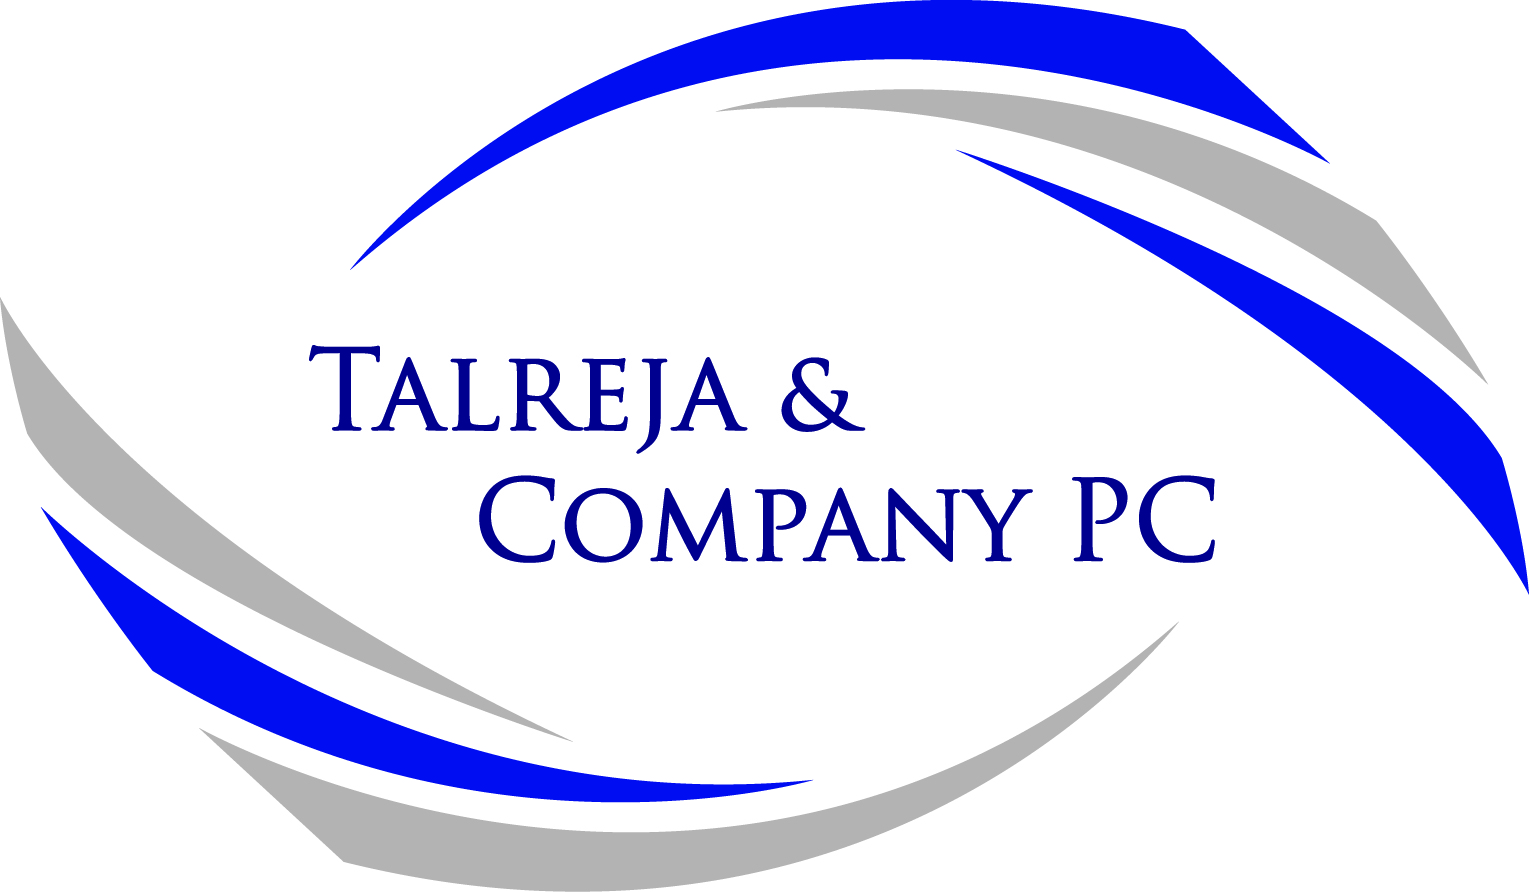 Talreja and Company PC